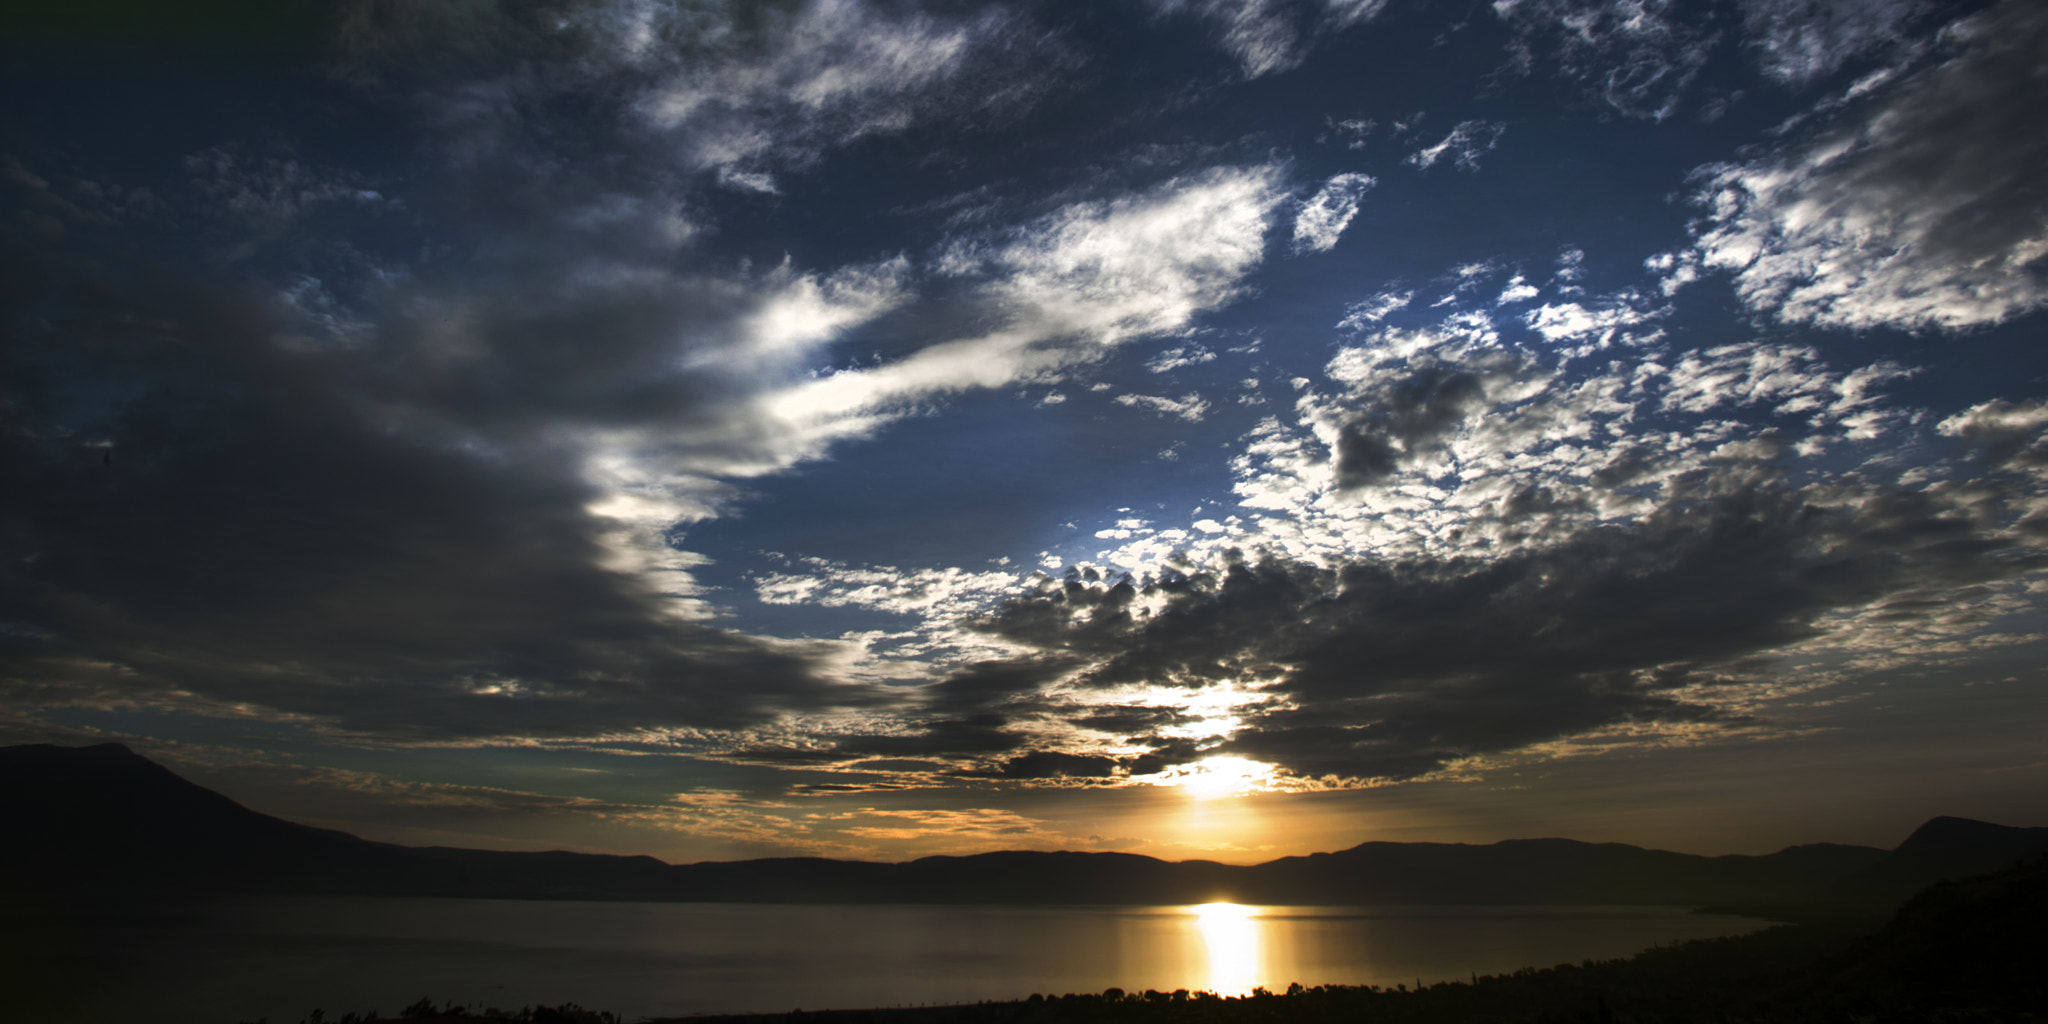 Photograph Sunset at Chapala by Cristobal Garciaferro Rubio on 500px